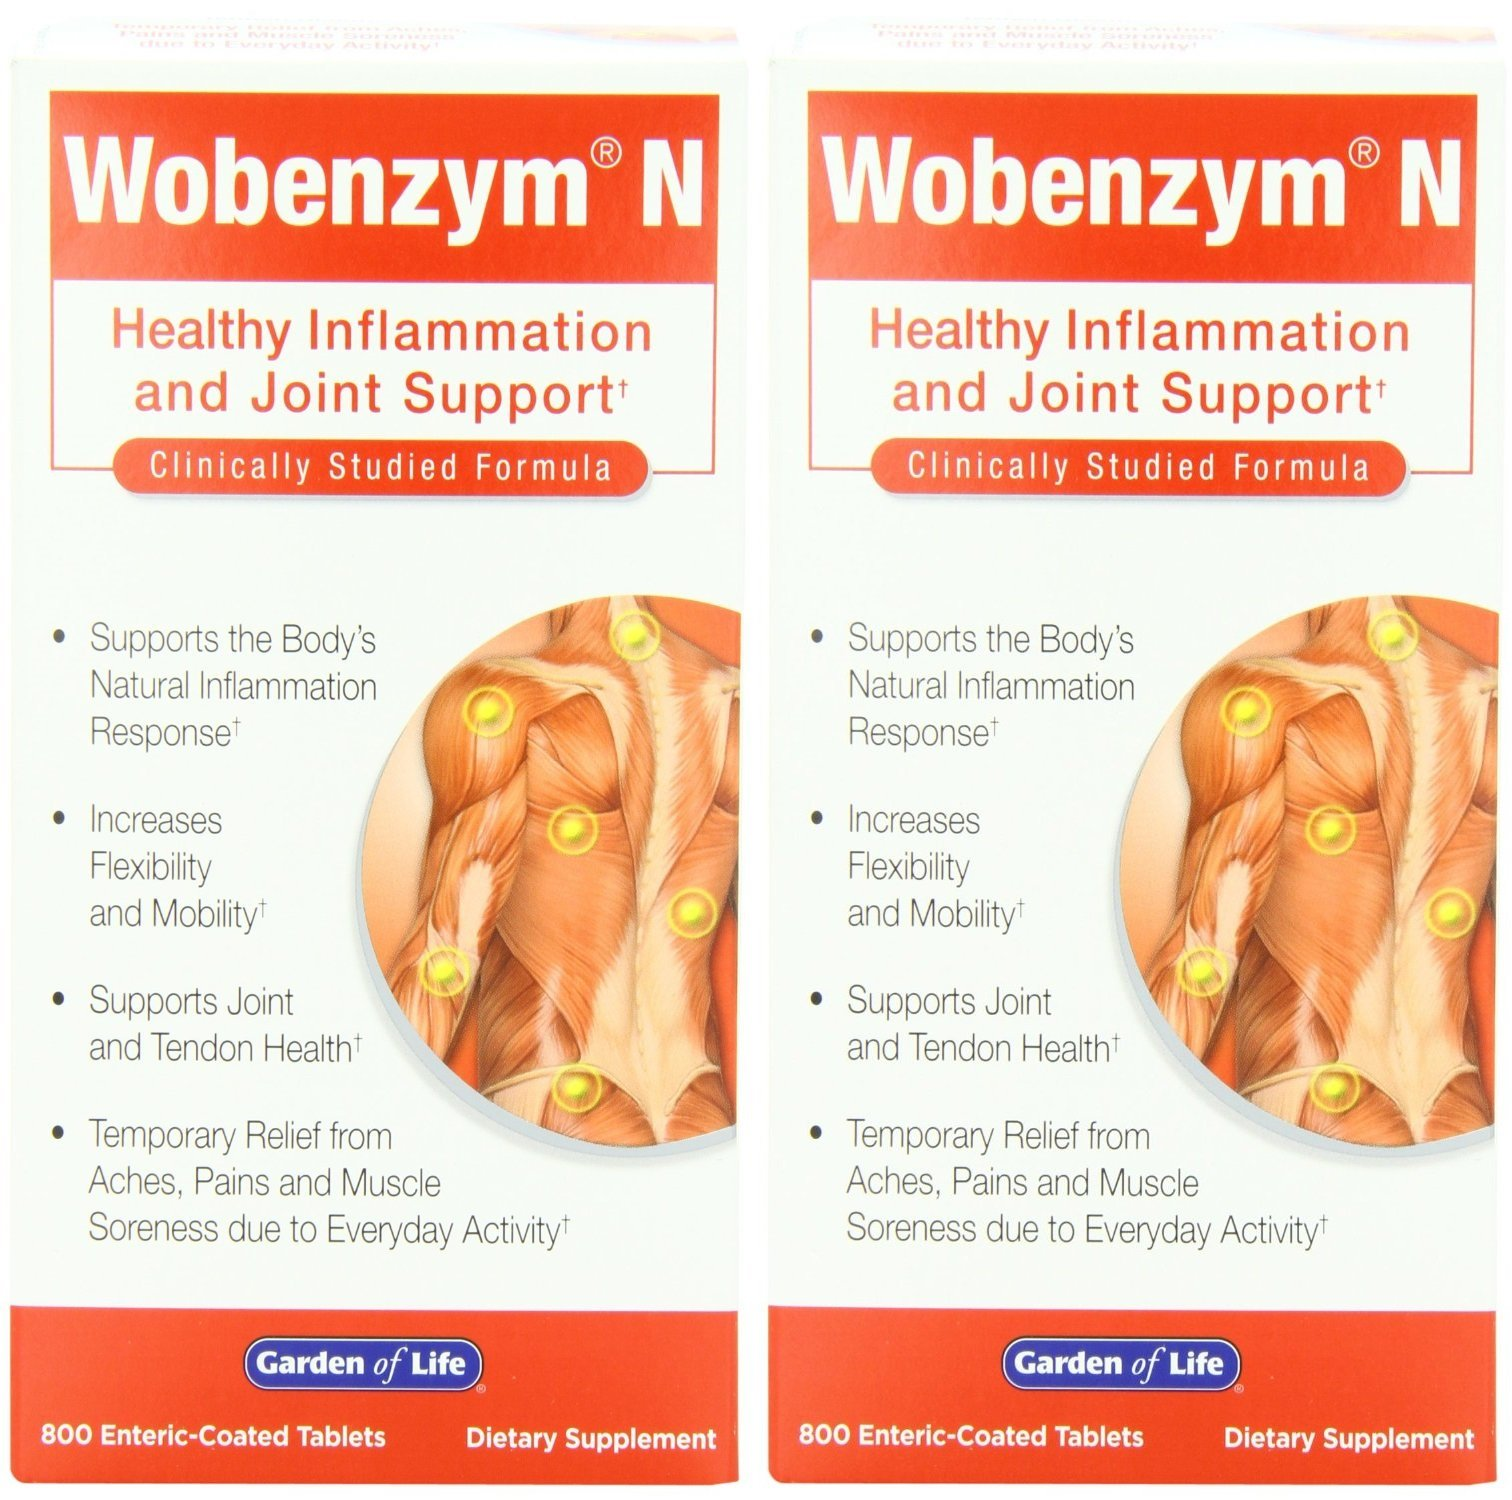 Wobenzym N Enteric Coated Tabs, 800-count Bottle (800 Tablets X 2)